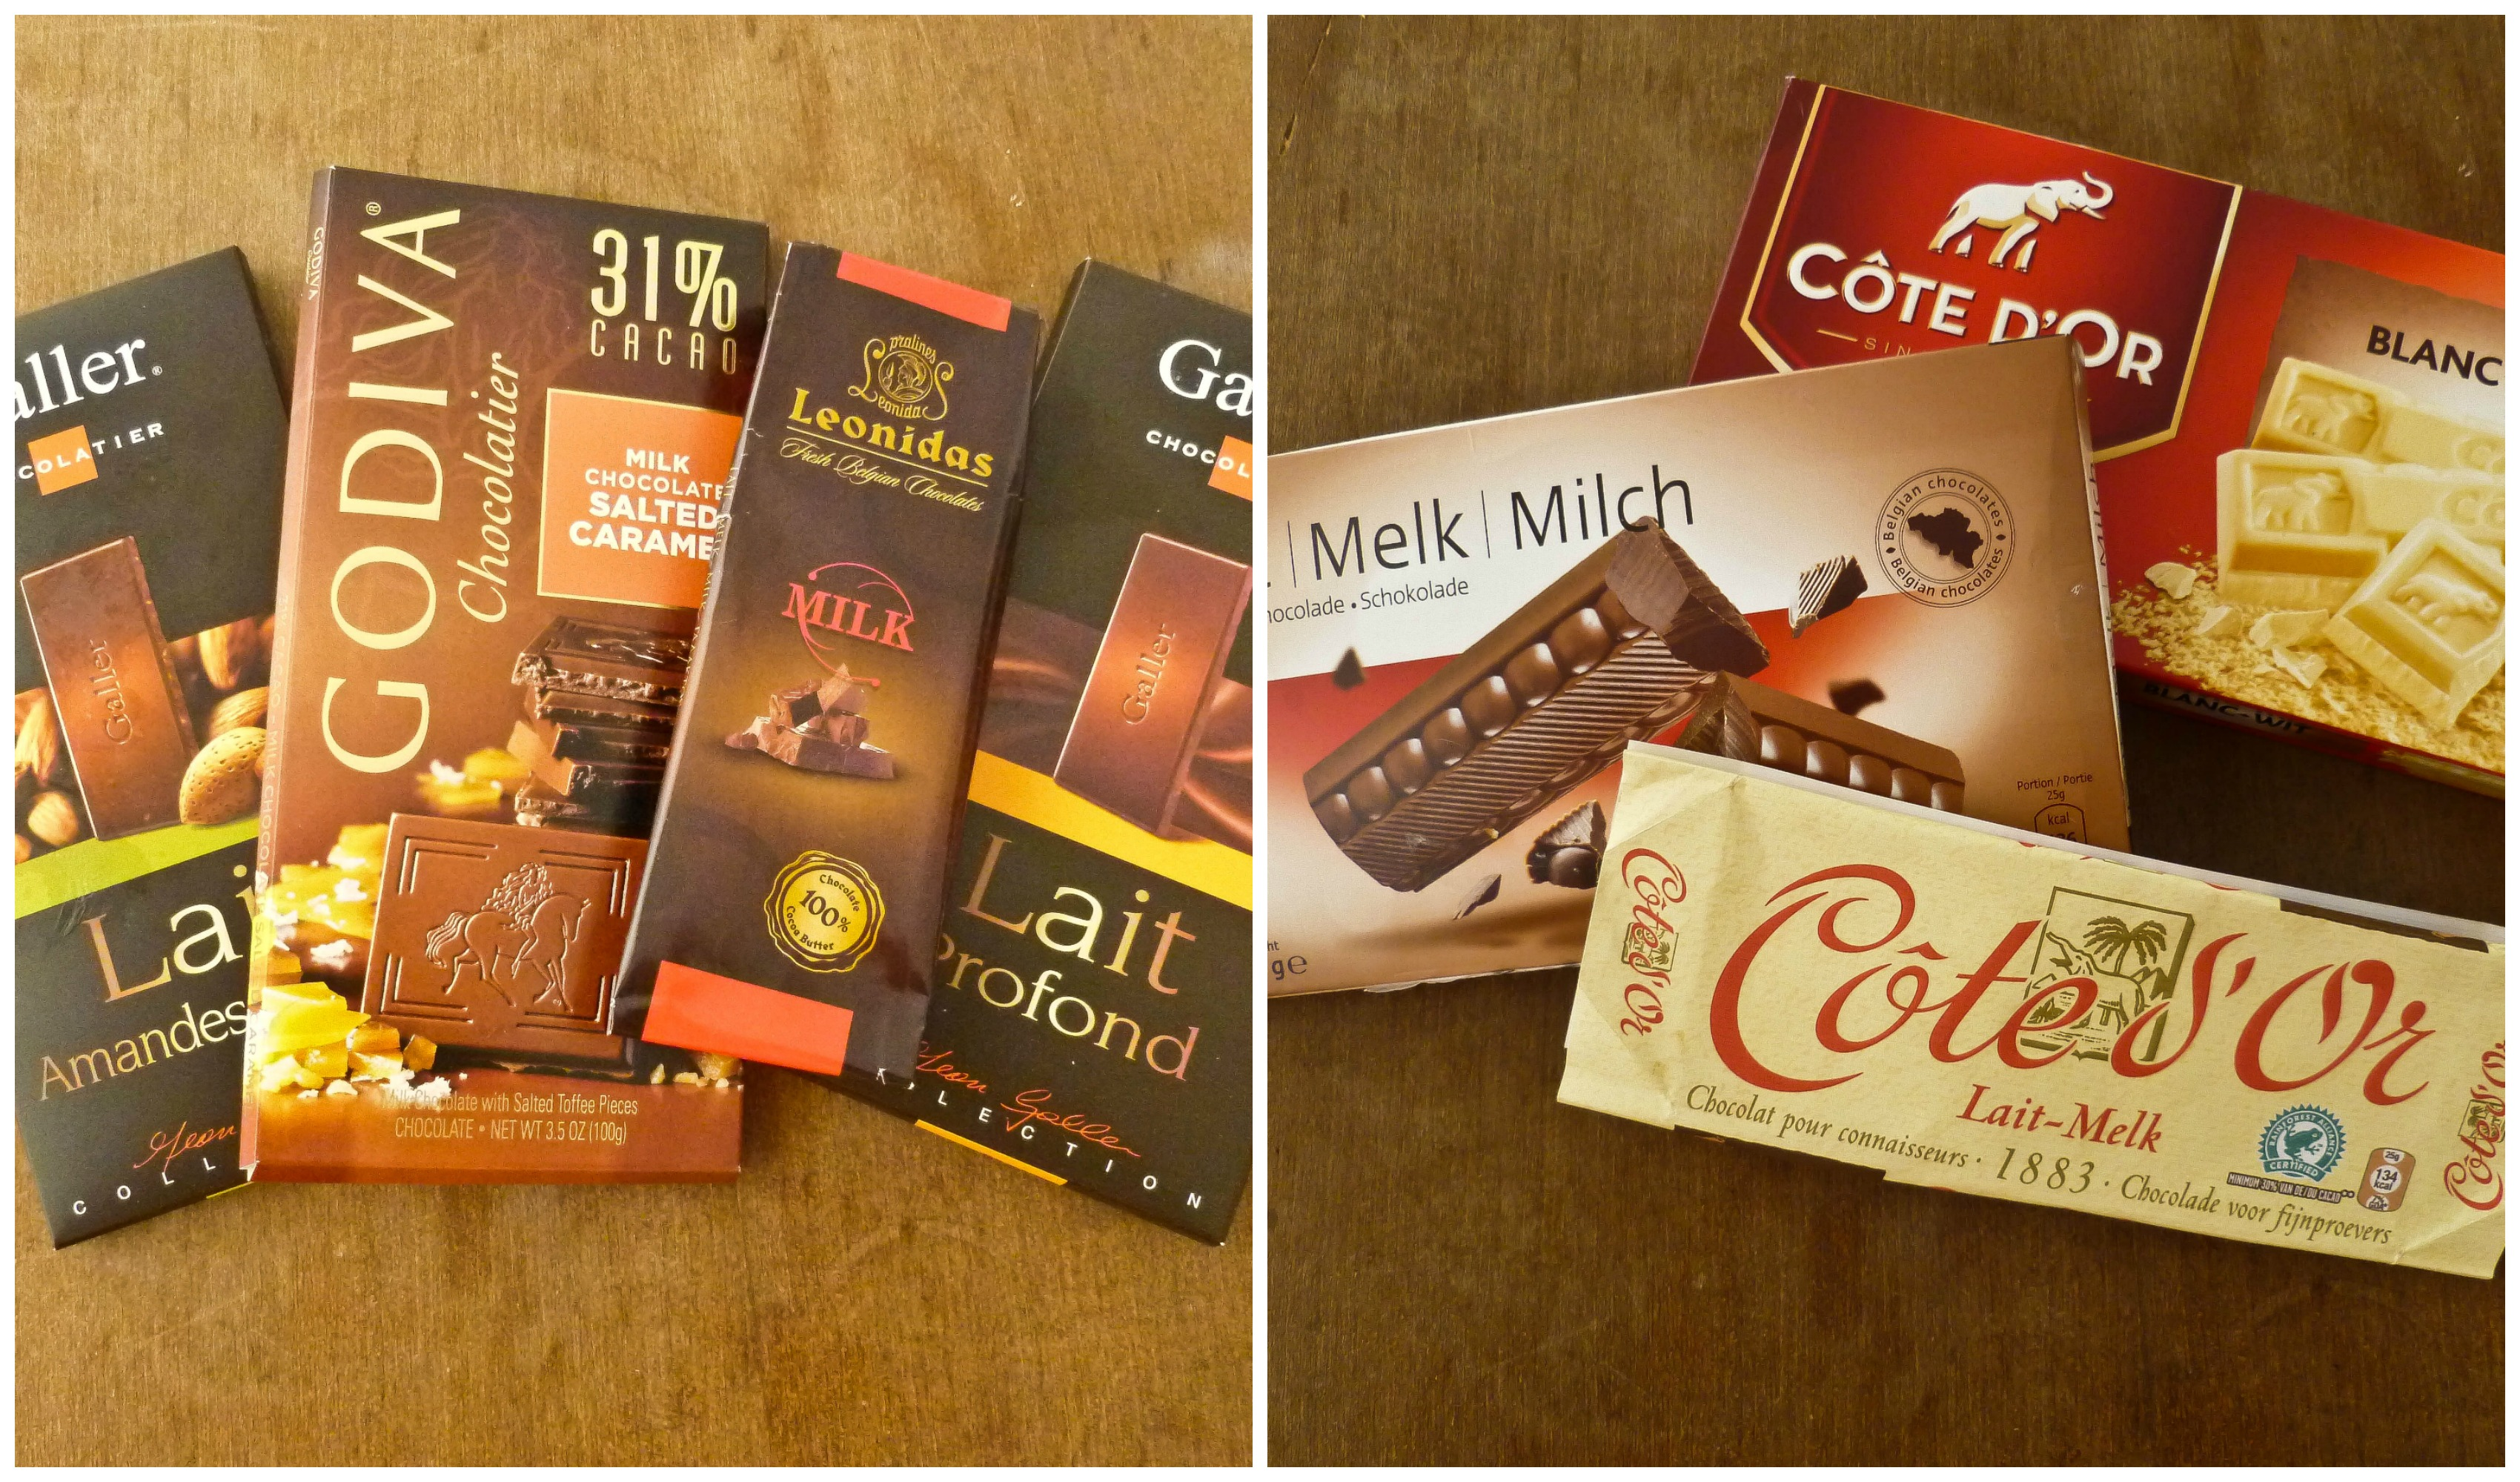 Chocolate in Brussels: Expensive vs Supermarket | Confused ...